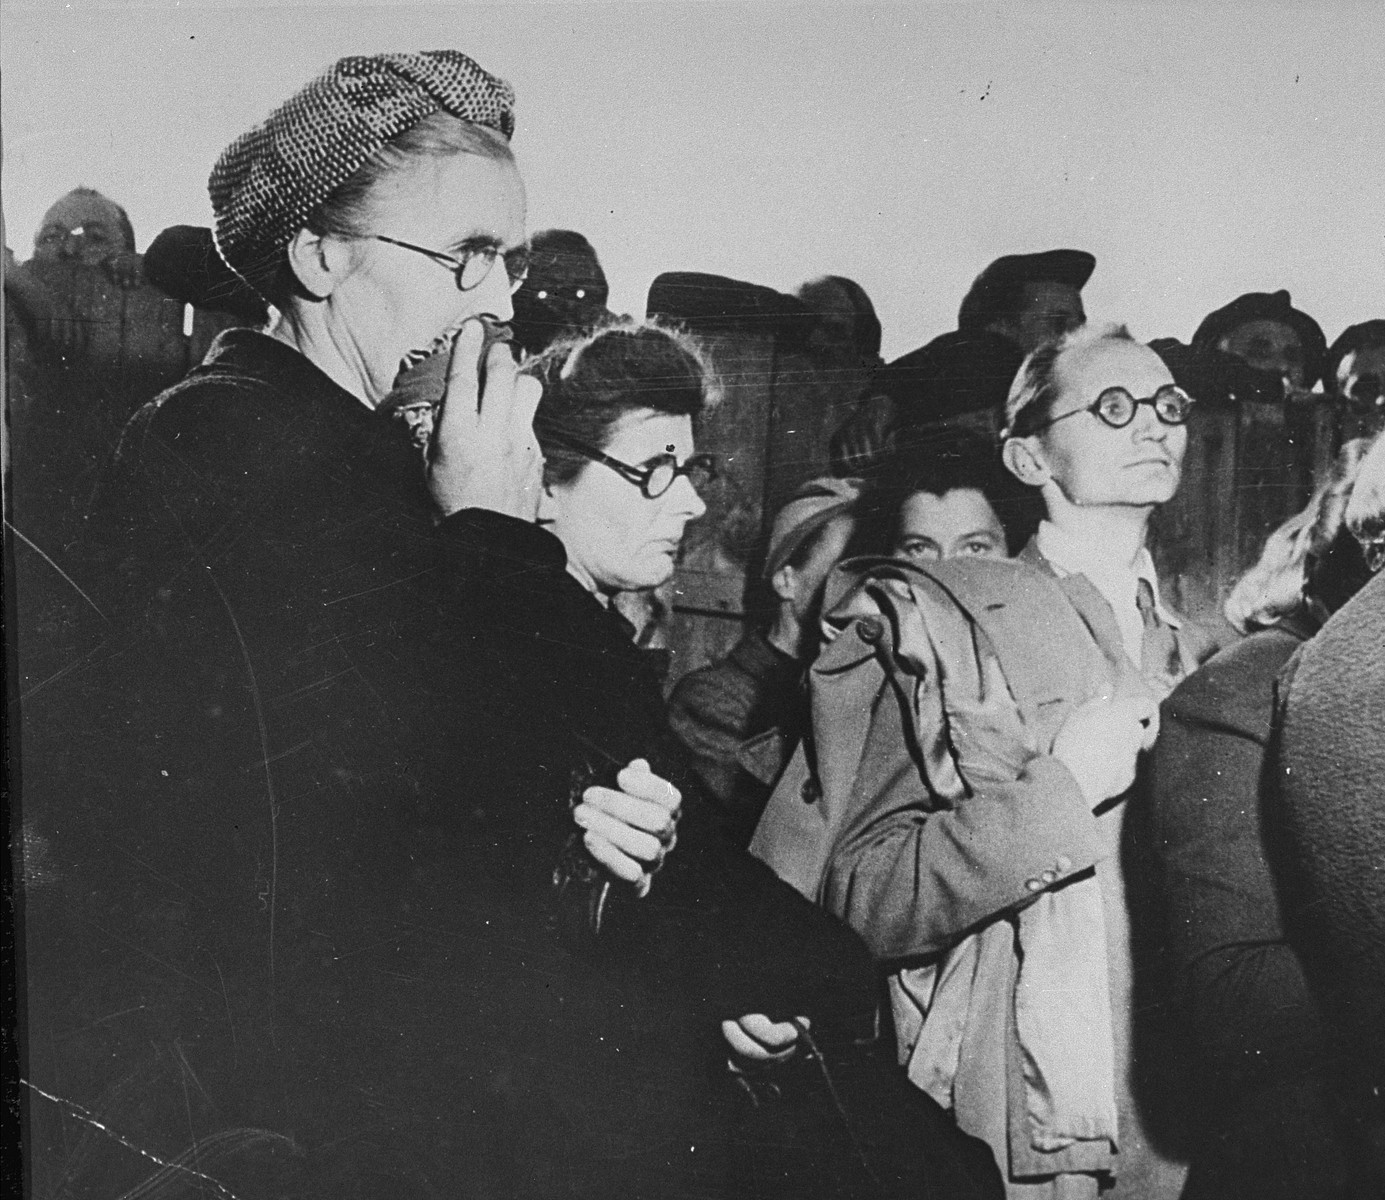 German cititzens who have been forced by the American Army to see the crimes committed in Buchenwald camp.